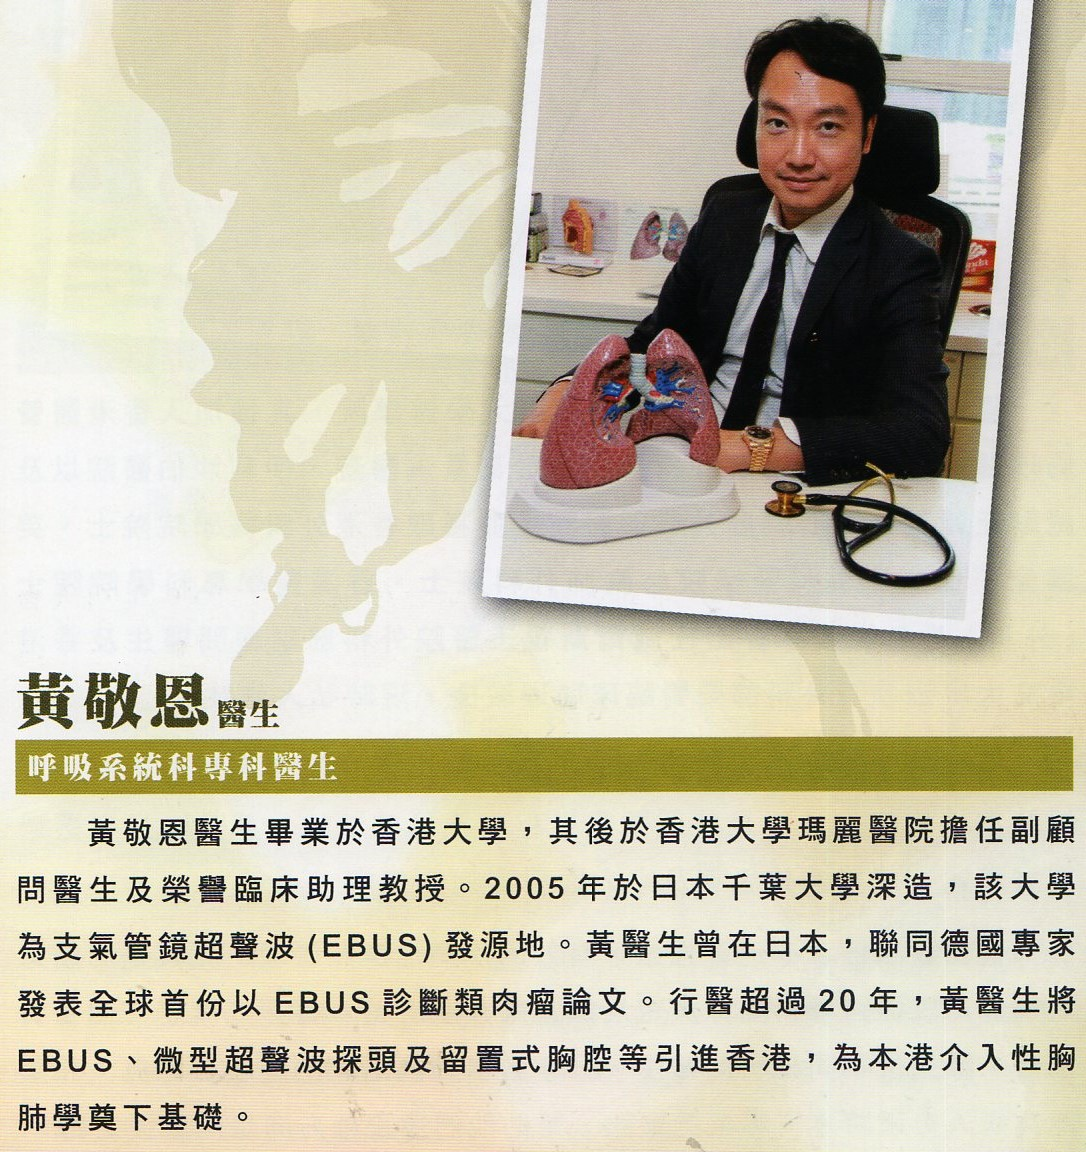 http://www.familyhealth.com.hk/files/full/1159_4.jpg